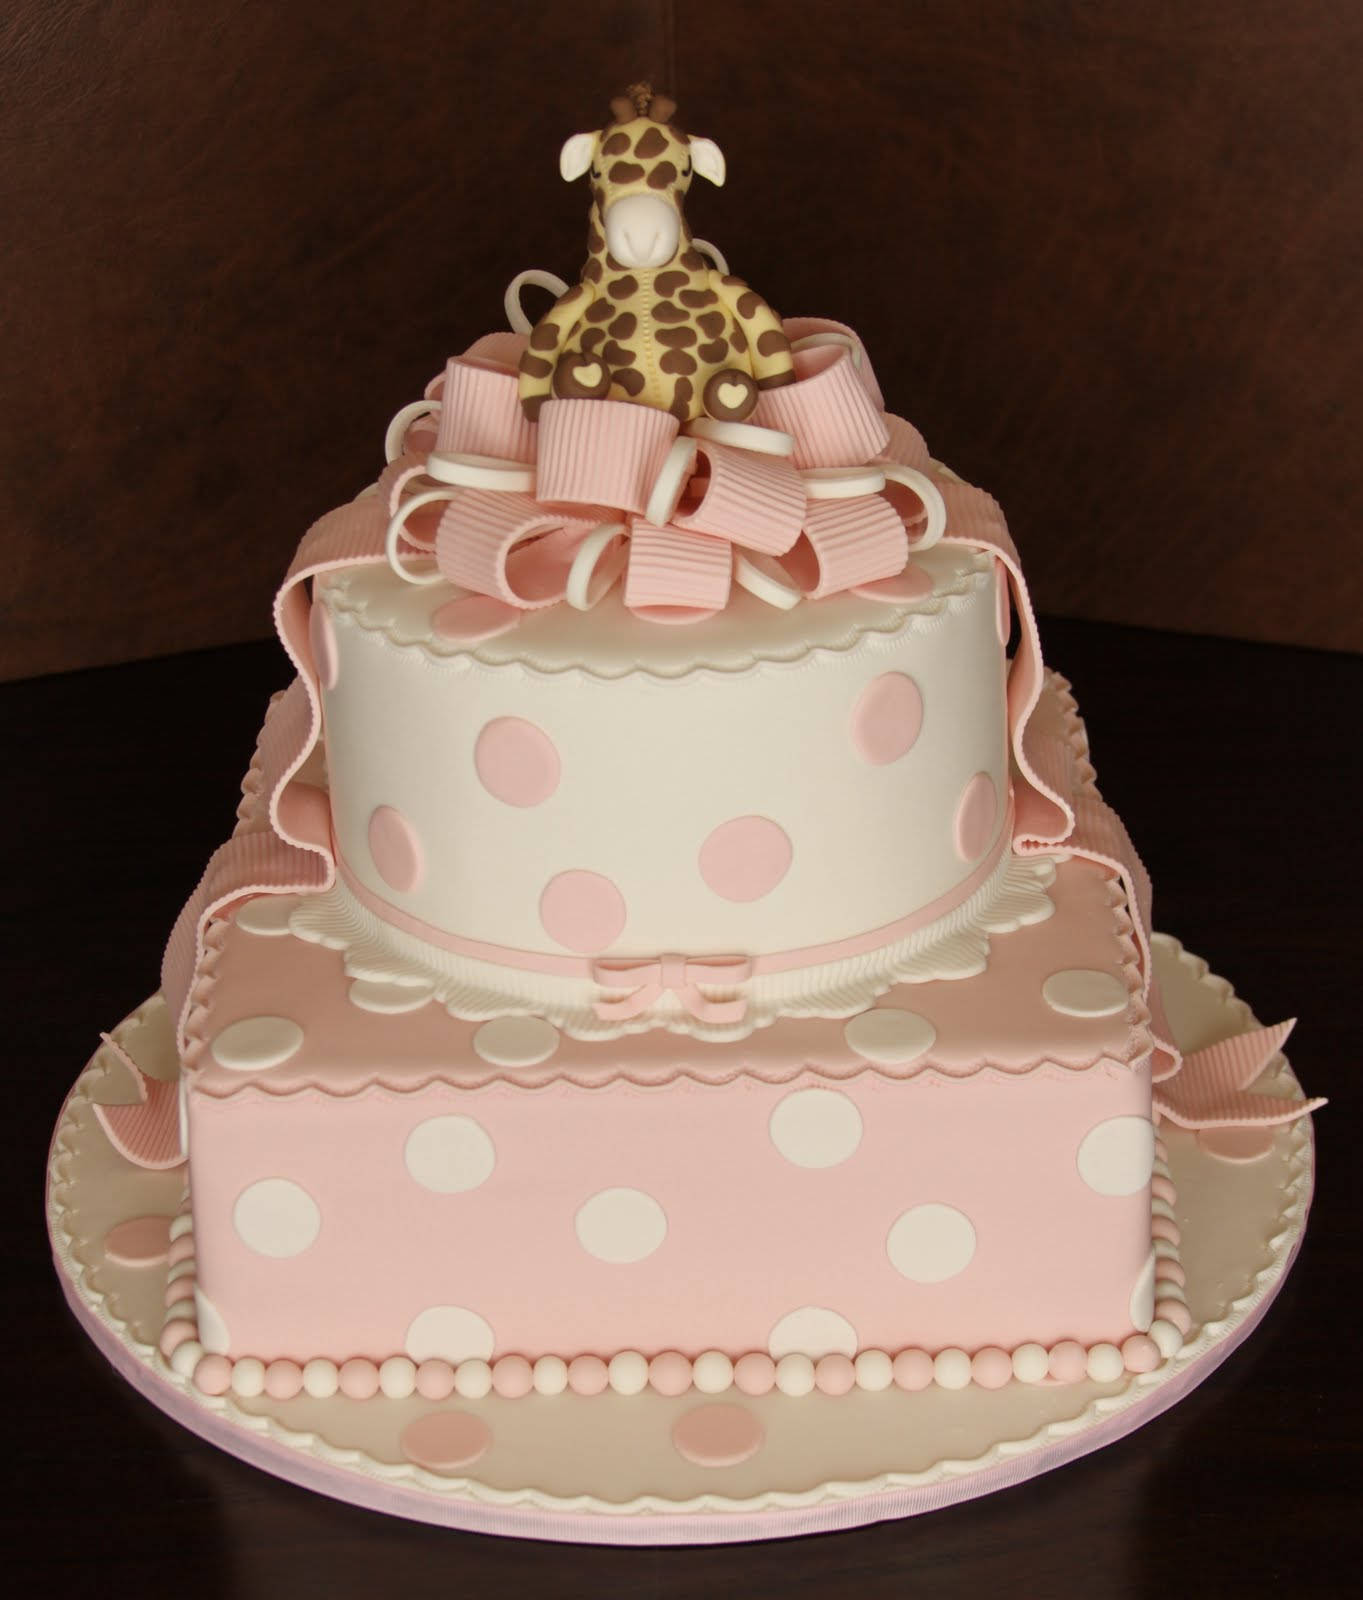 Giraffe Polka Dot Baby Shower Cake